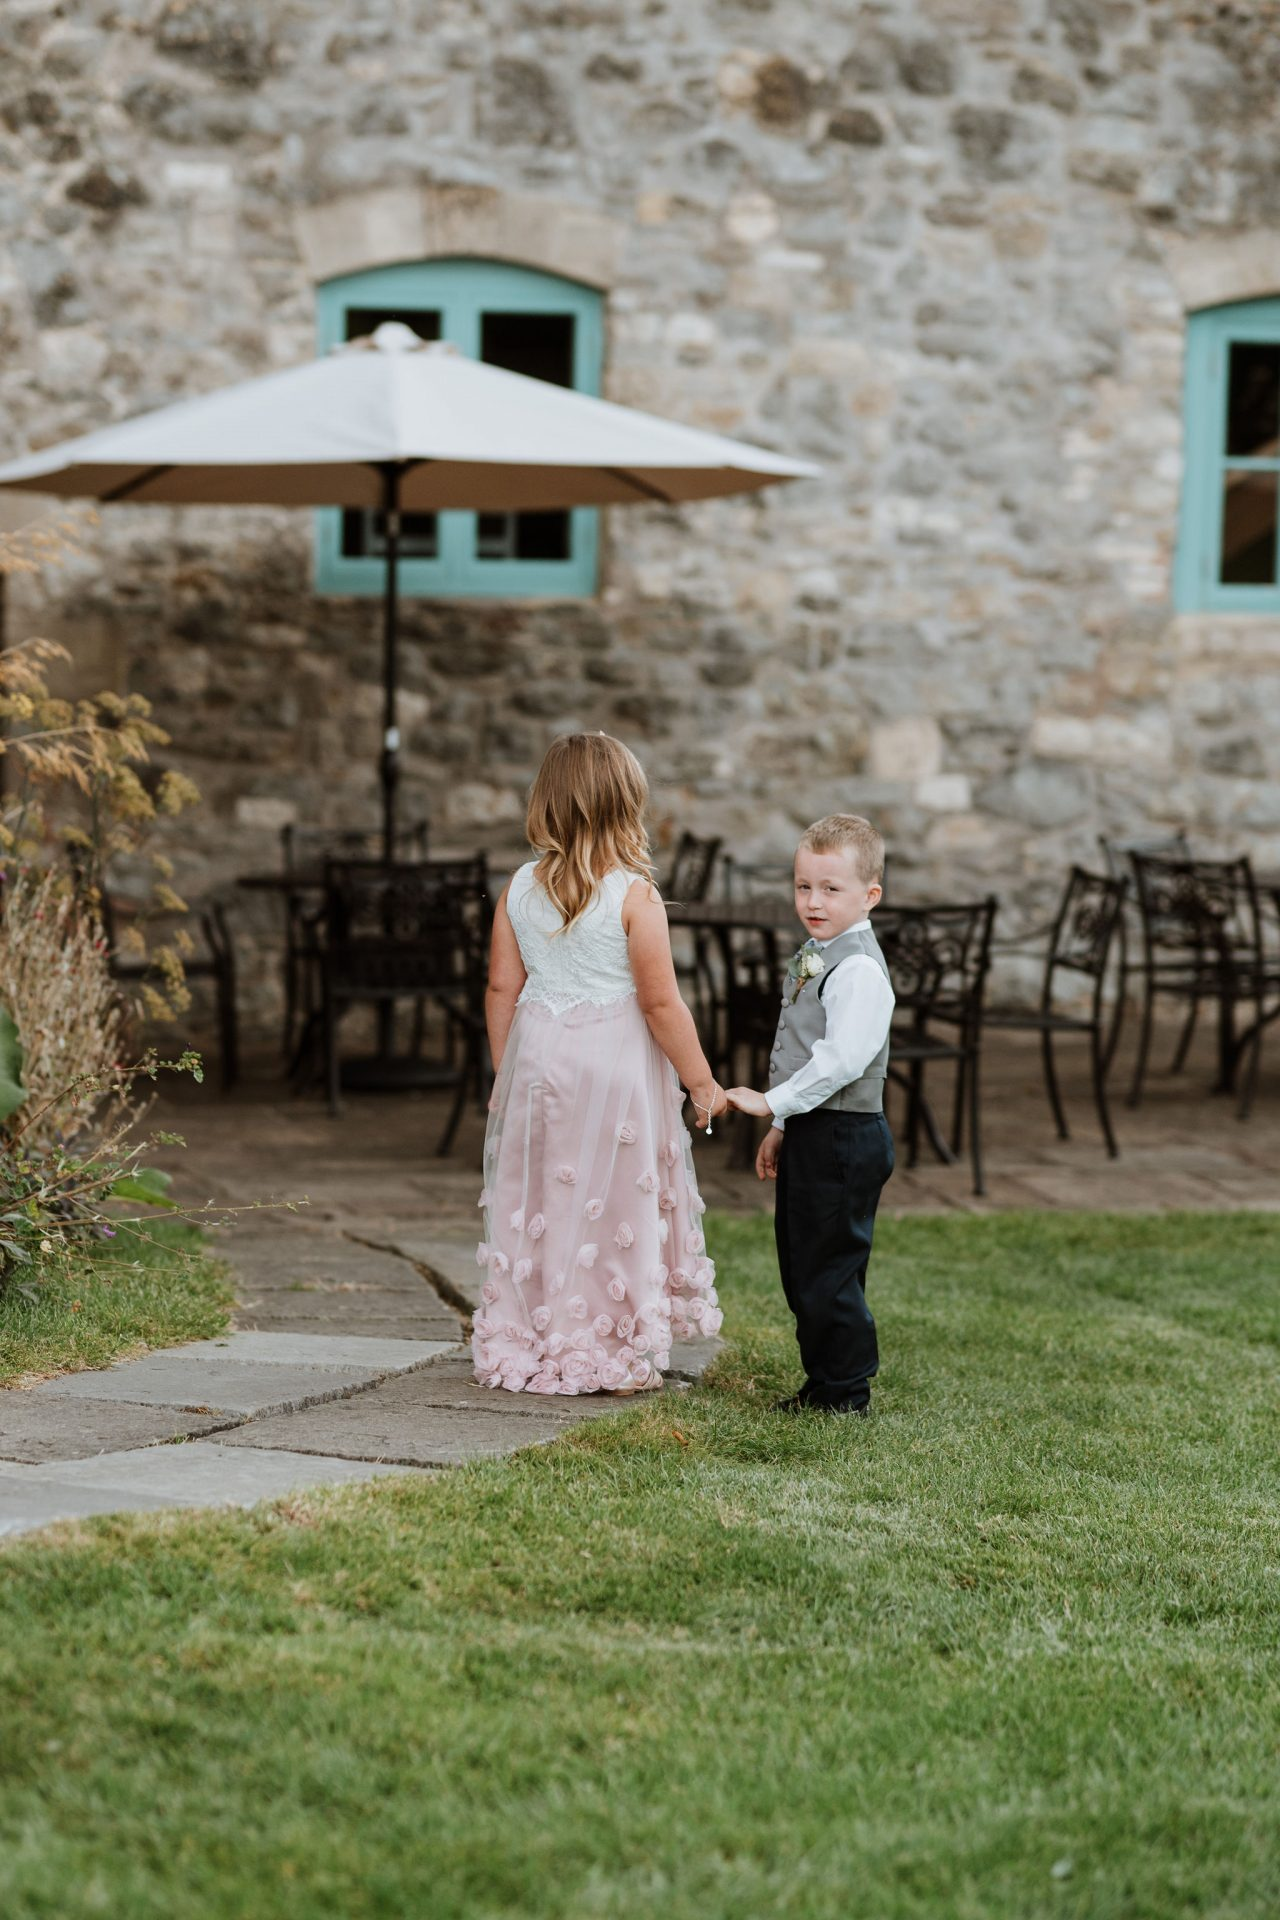 flower girl and page boy holding hands